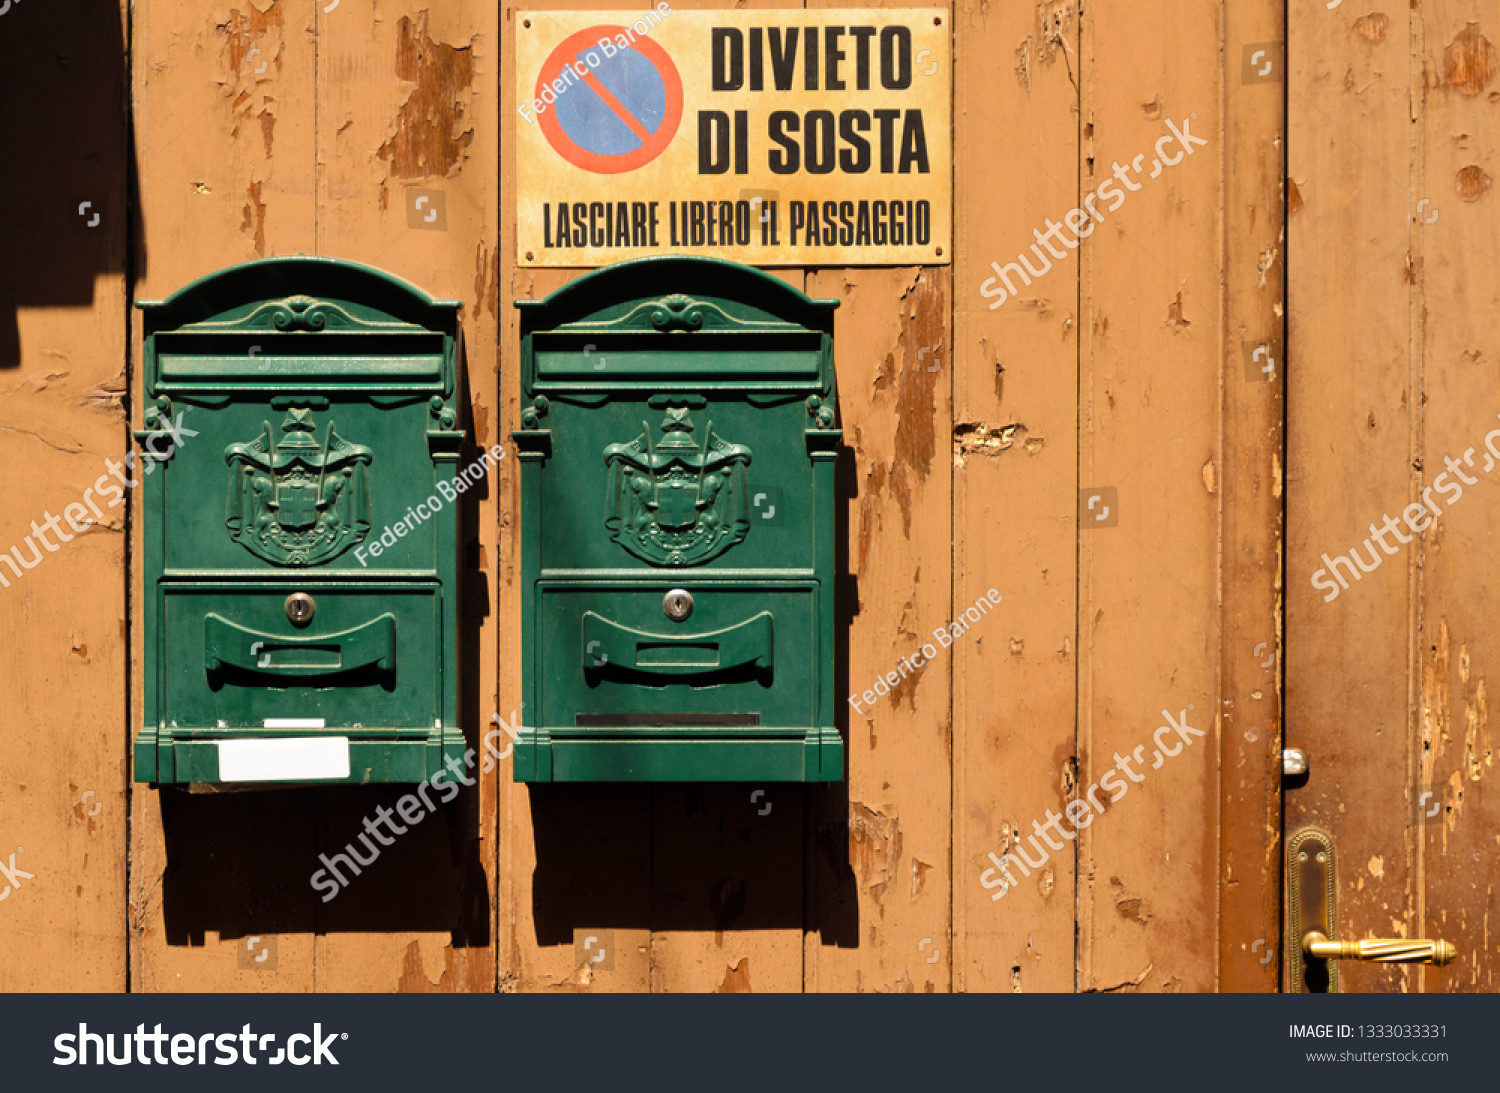 stock-photo-two-green-mailboxes-on-a-woo